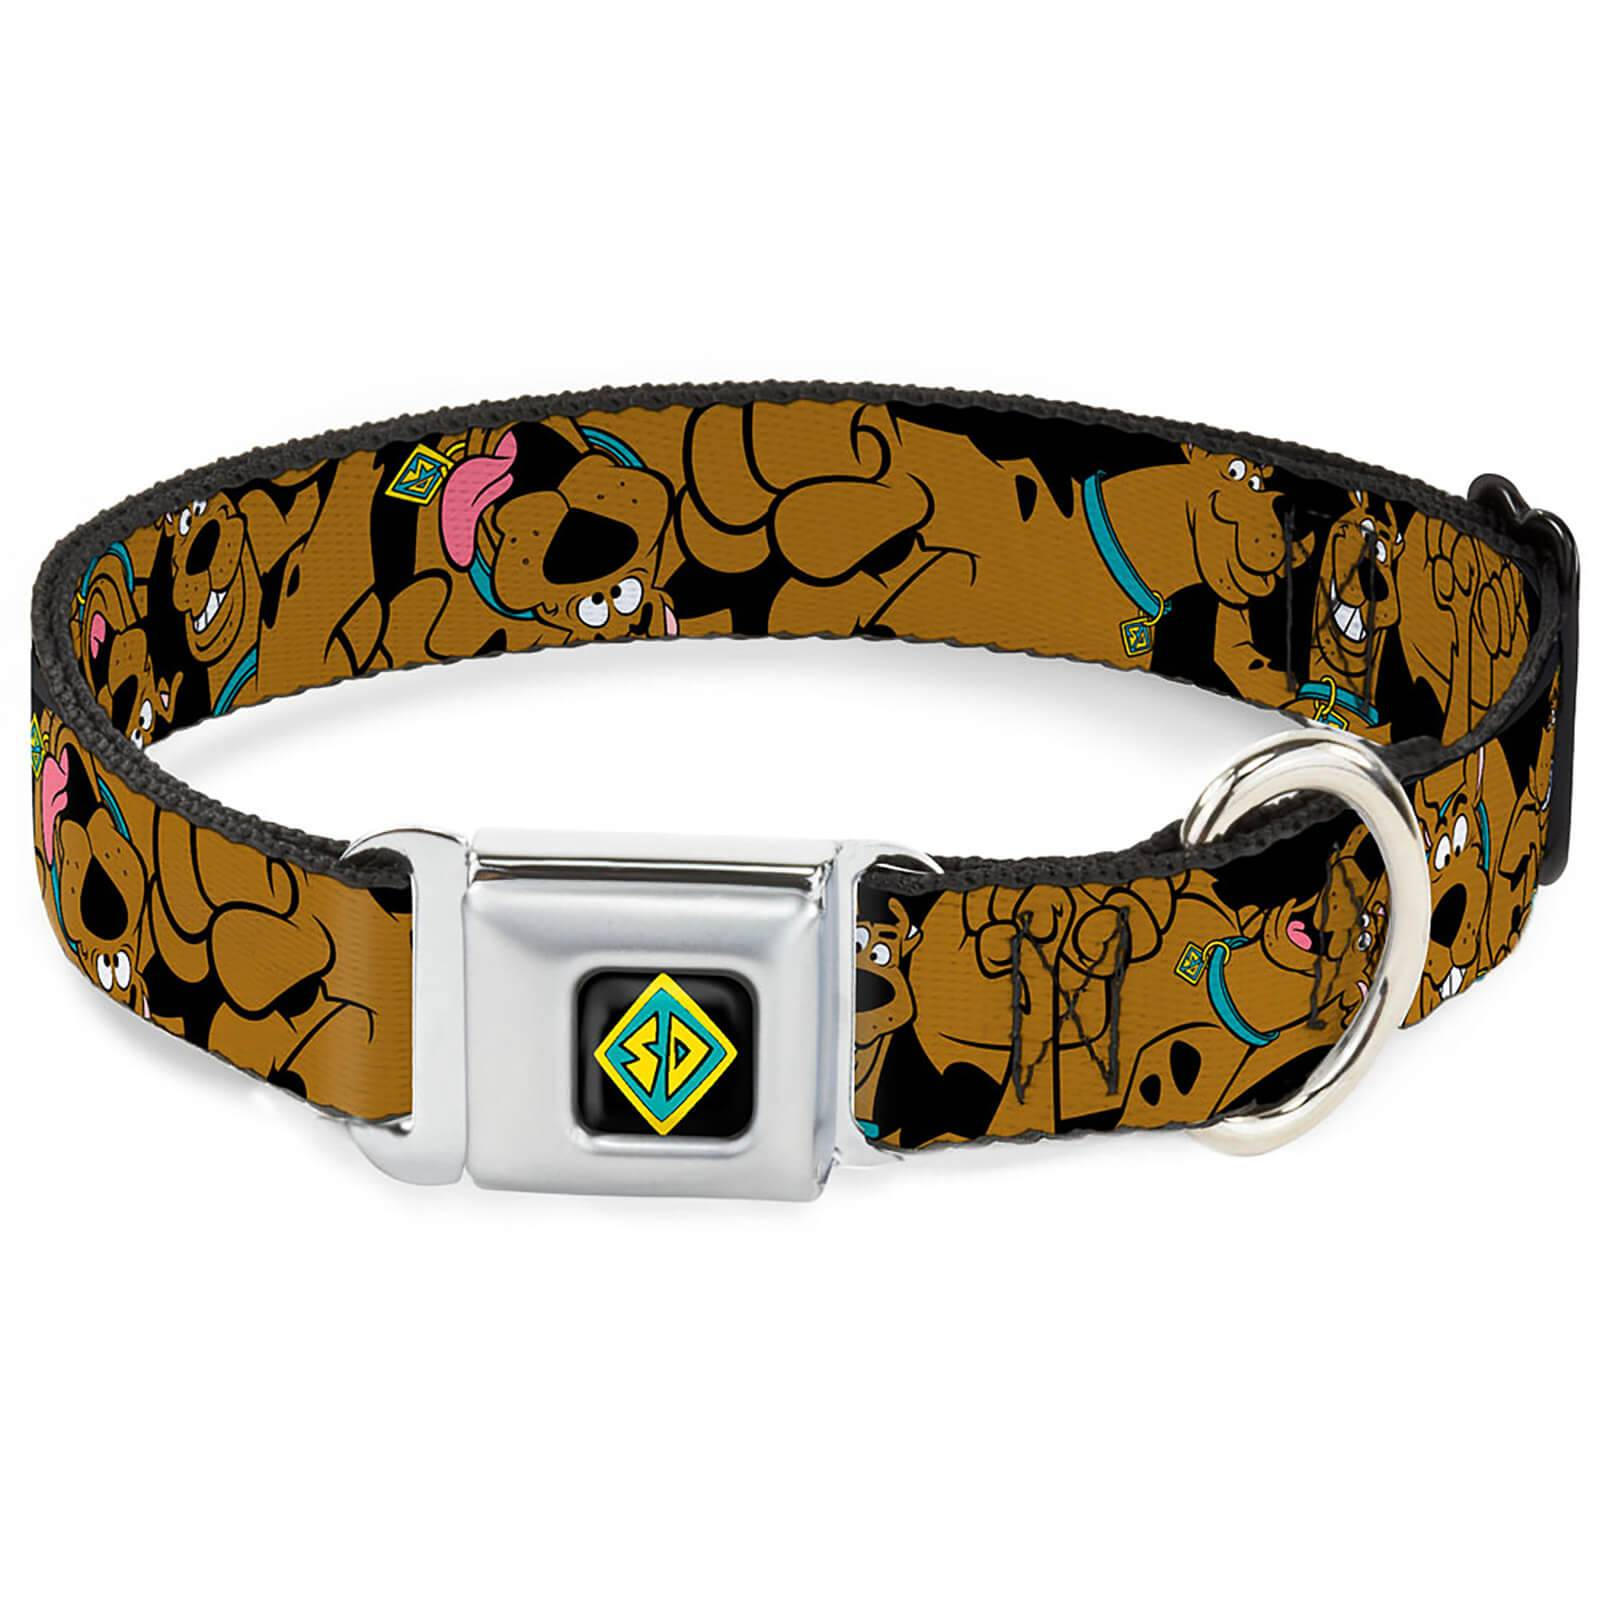 Buckle-Down Scooby-Doo! Dog Collar (Various Sizes) - M/16-23 Inches